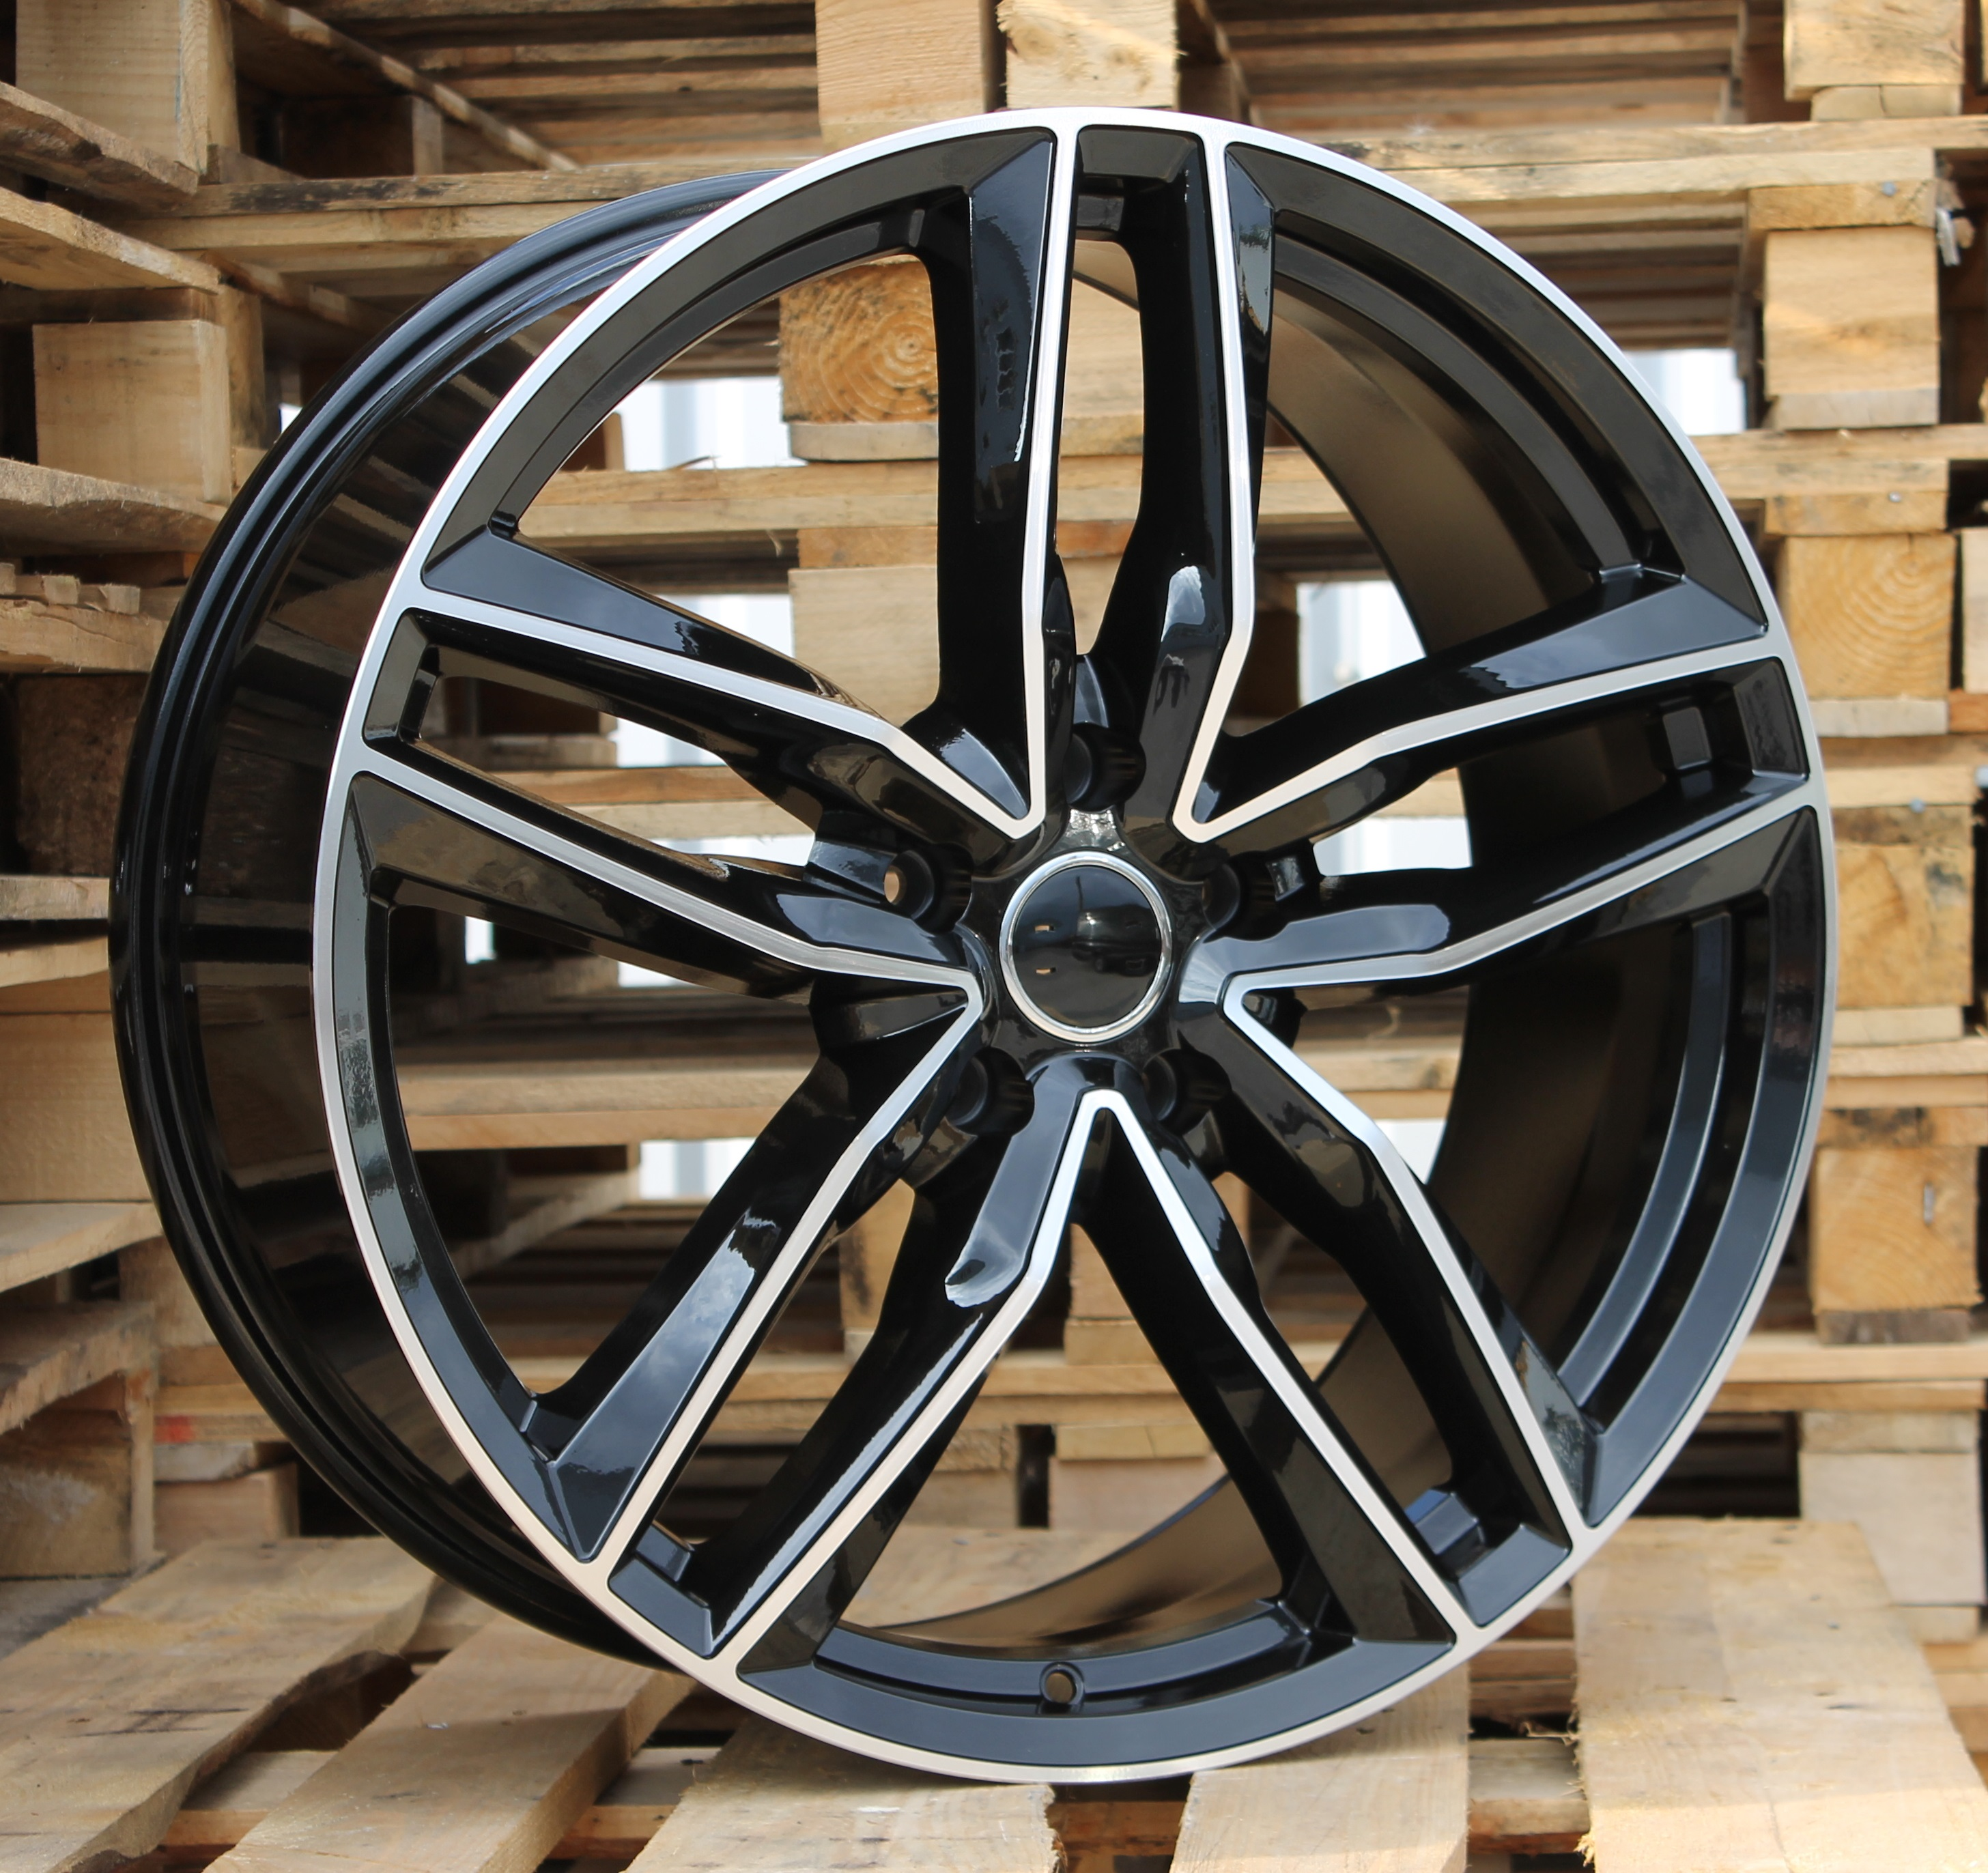 A17X7.5 5x112 ET40 66.45 BK690 MB+Powder Coating RWR AUD (+3eur) (P)## 7.5x17 ET40 5x112